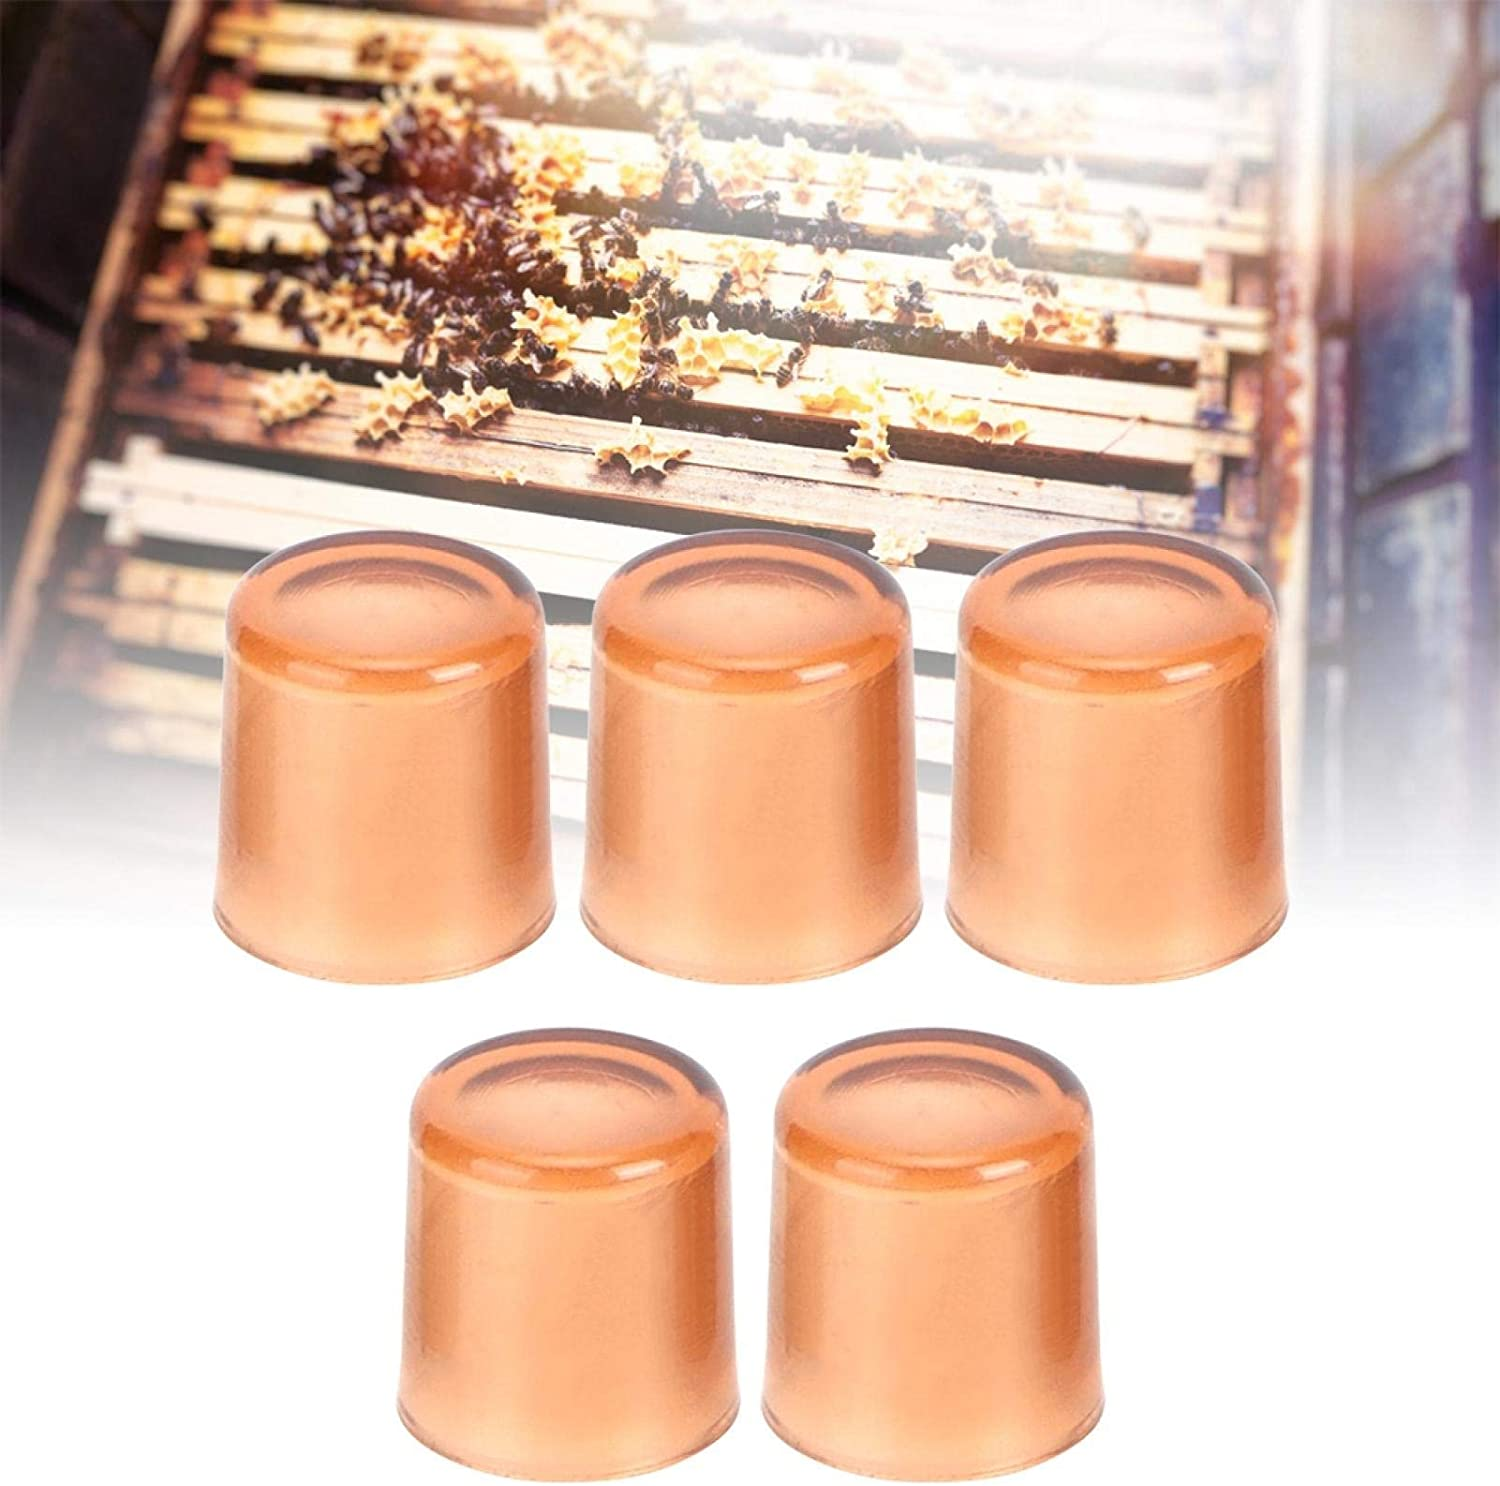 Bamjour Beekeeping Rearing Max 65% OFF Max 62% OFF Box 500Pcs Cups Plastic Brown Cell Be